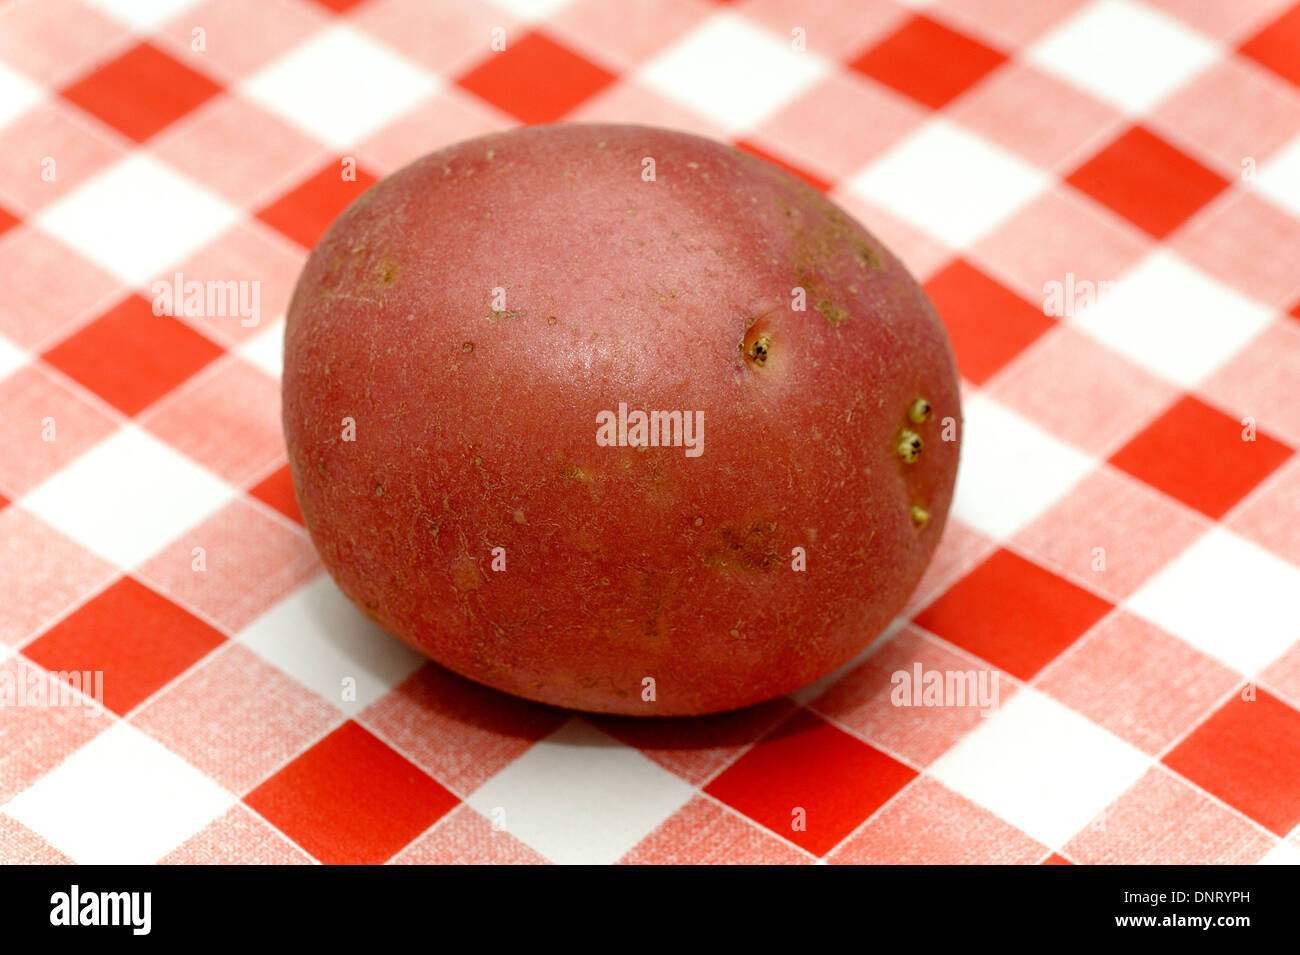 A red potato on a gingham table cloth background - Stock Image